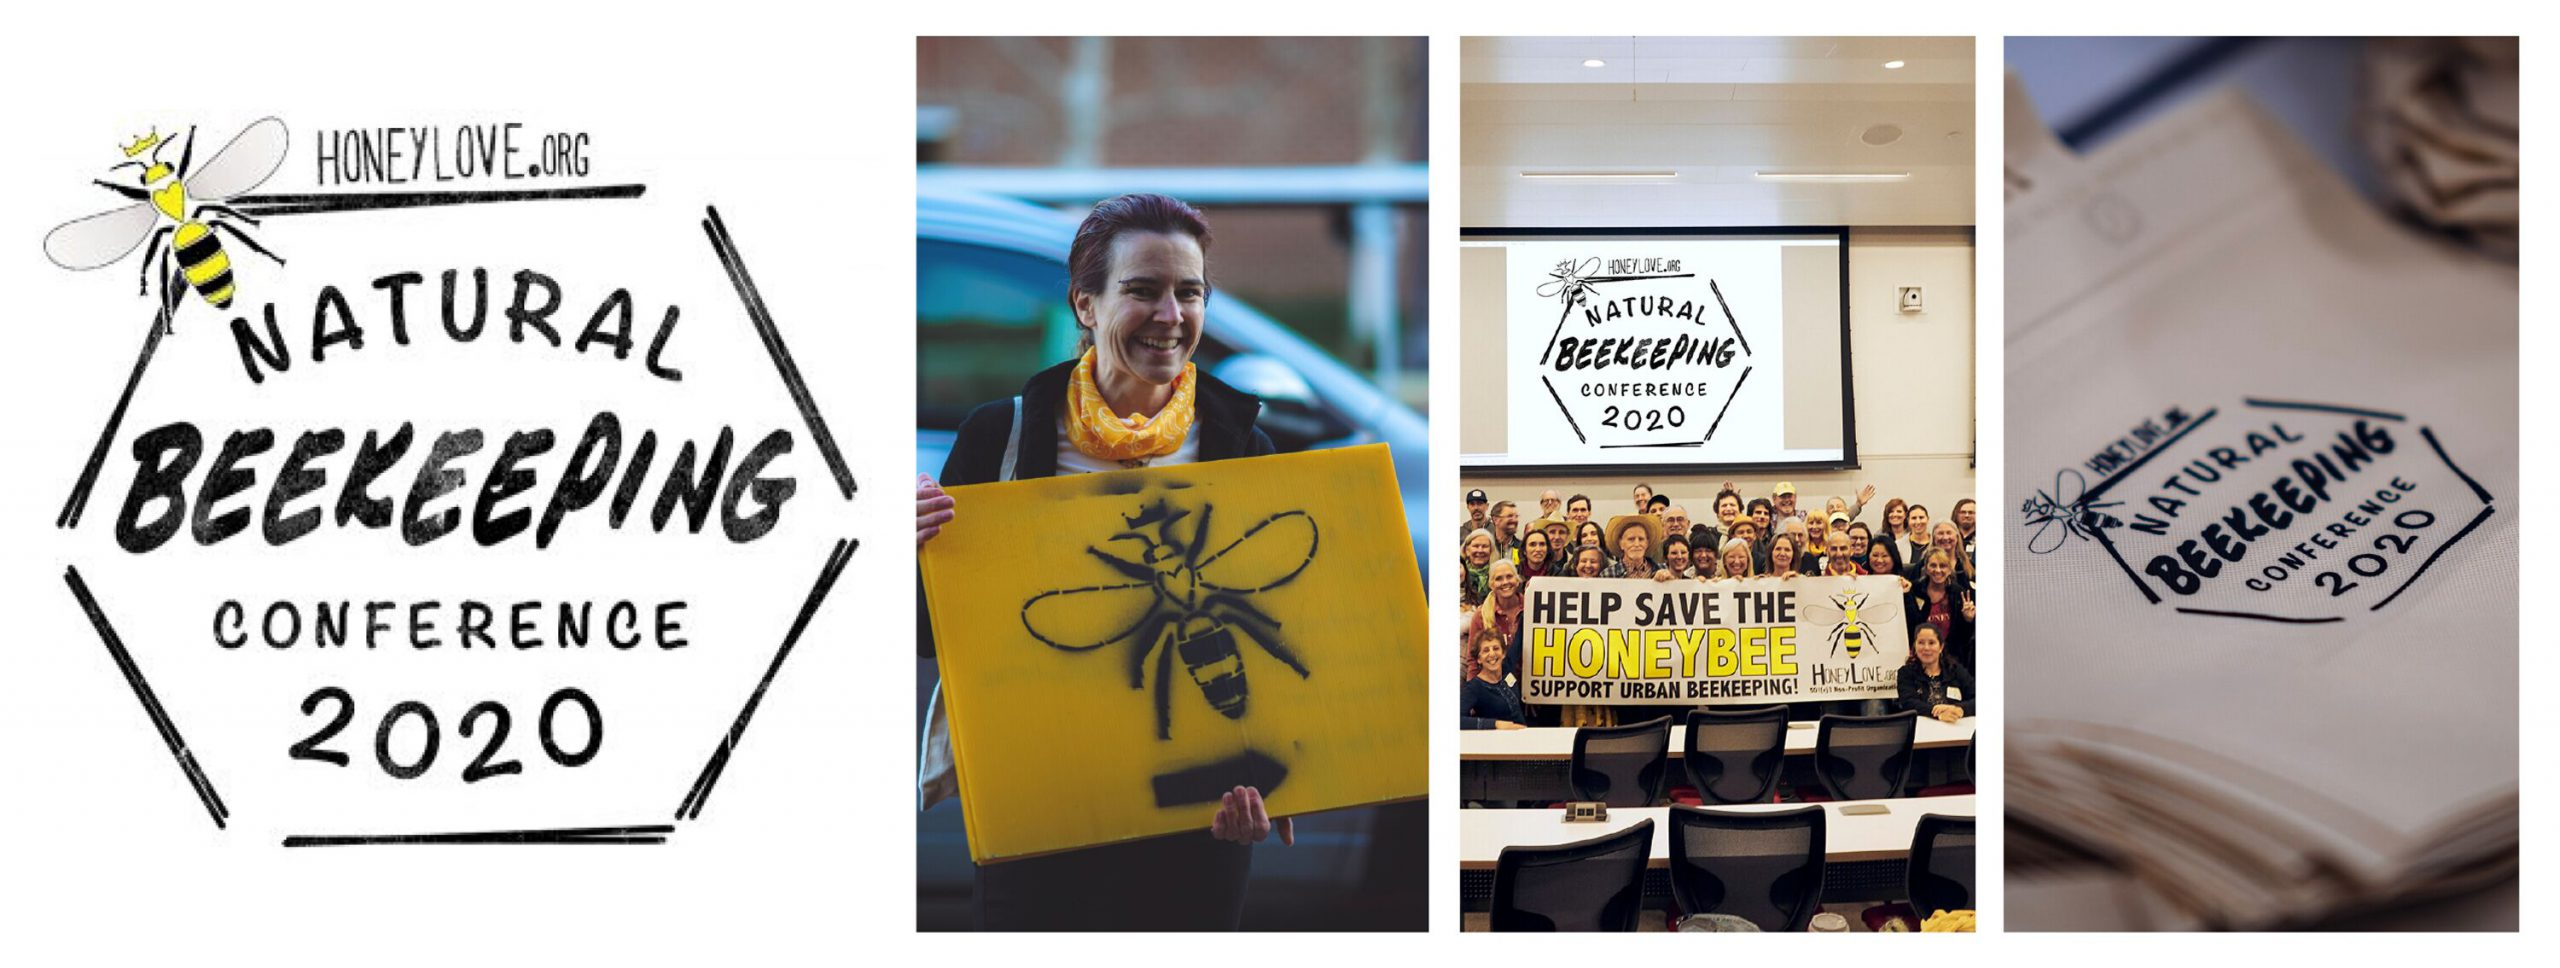 HoneyLove.org hosted a Natural Beekeeping conference to help protect the honeybee